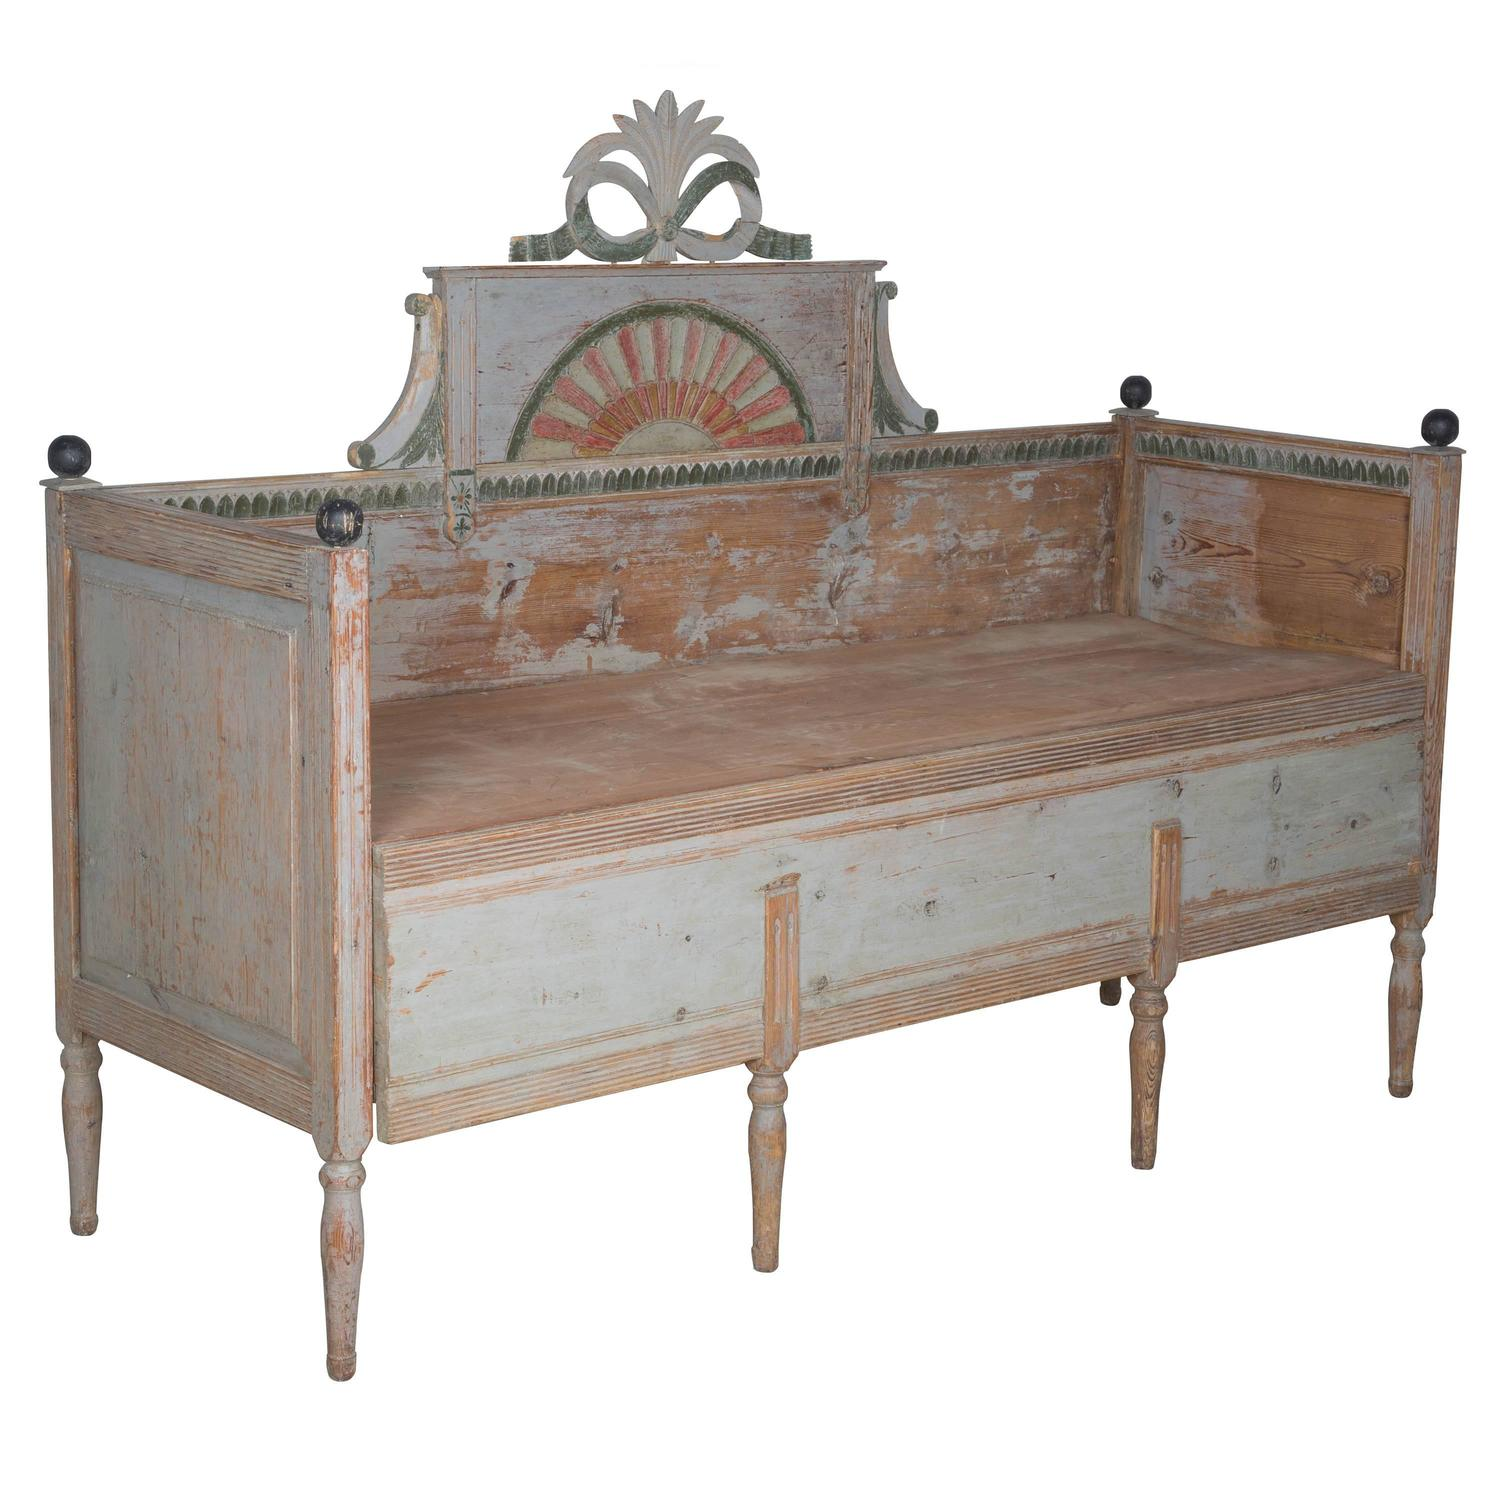 Original Painted Gustavian Bench Pull Out Bed For Sale At